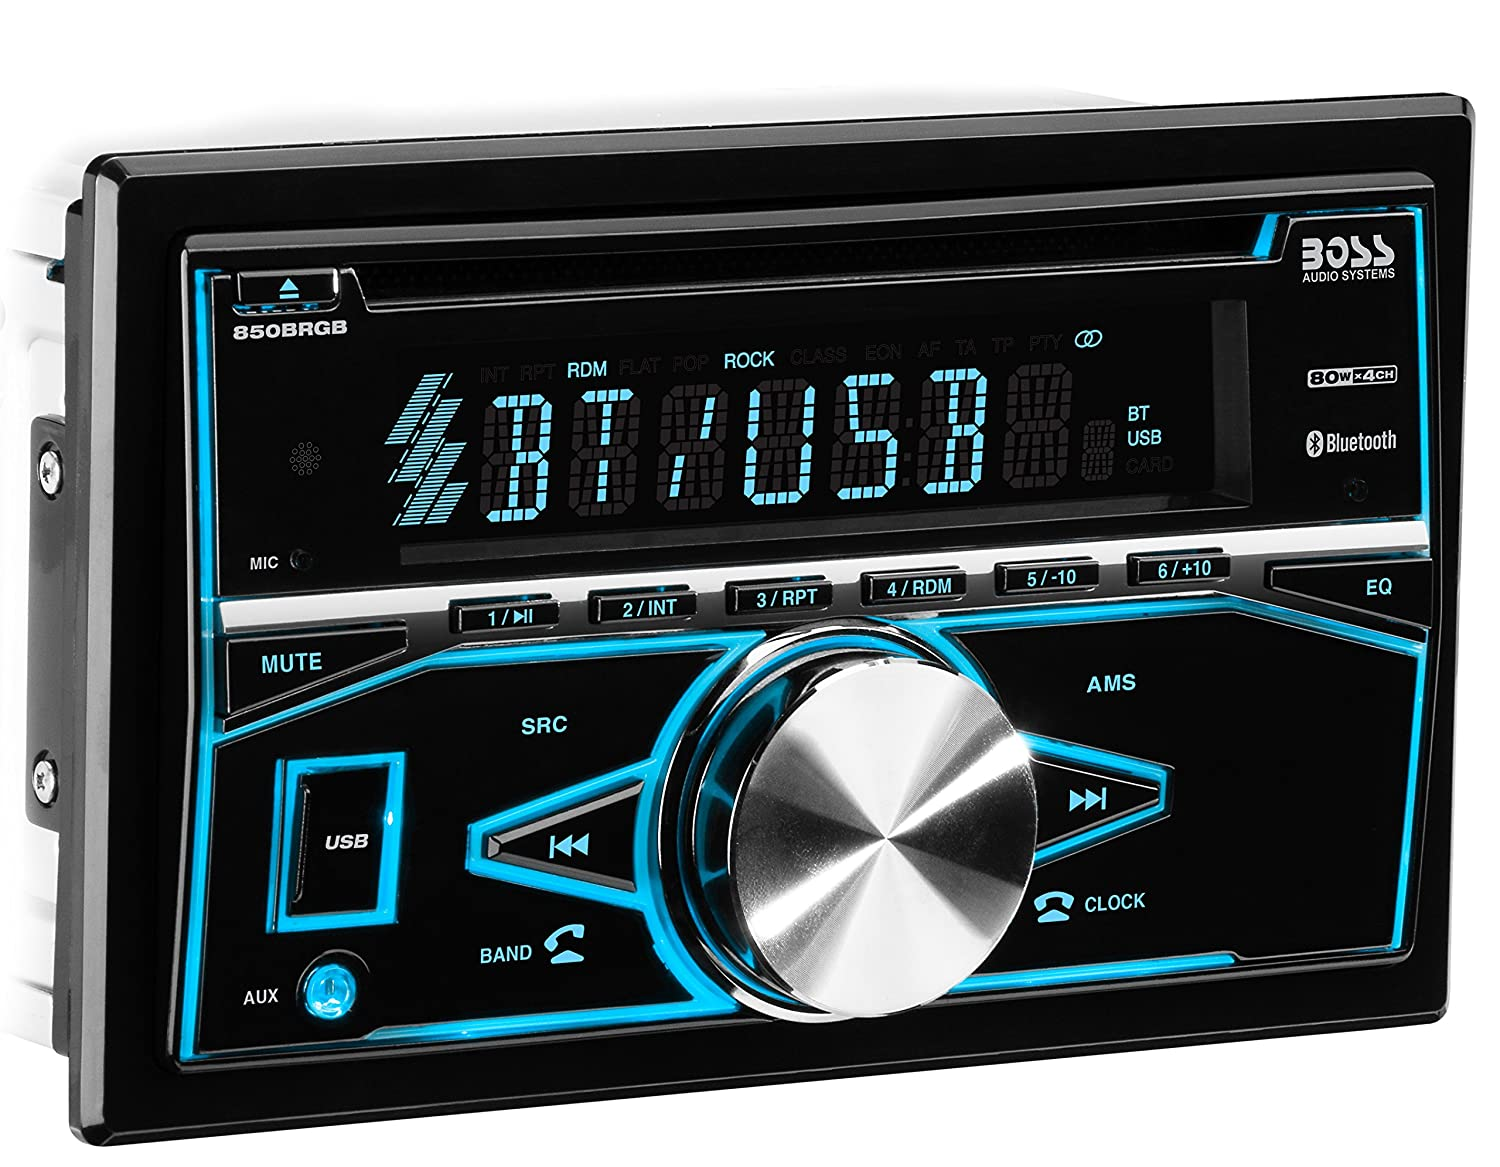 BOSS Audio 850BRGB Car Stereo - Double Din, Bluetooth, CD/MP3/USB AM/FM Radio, Multi Color Illumination